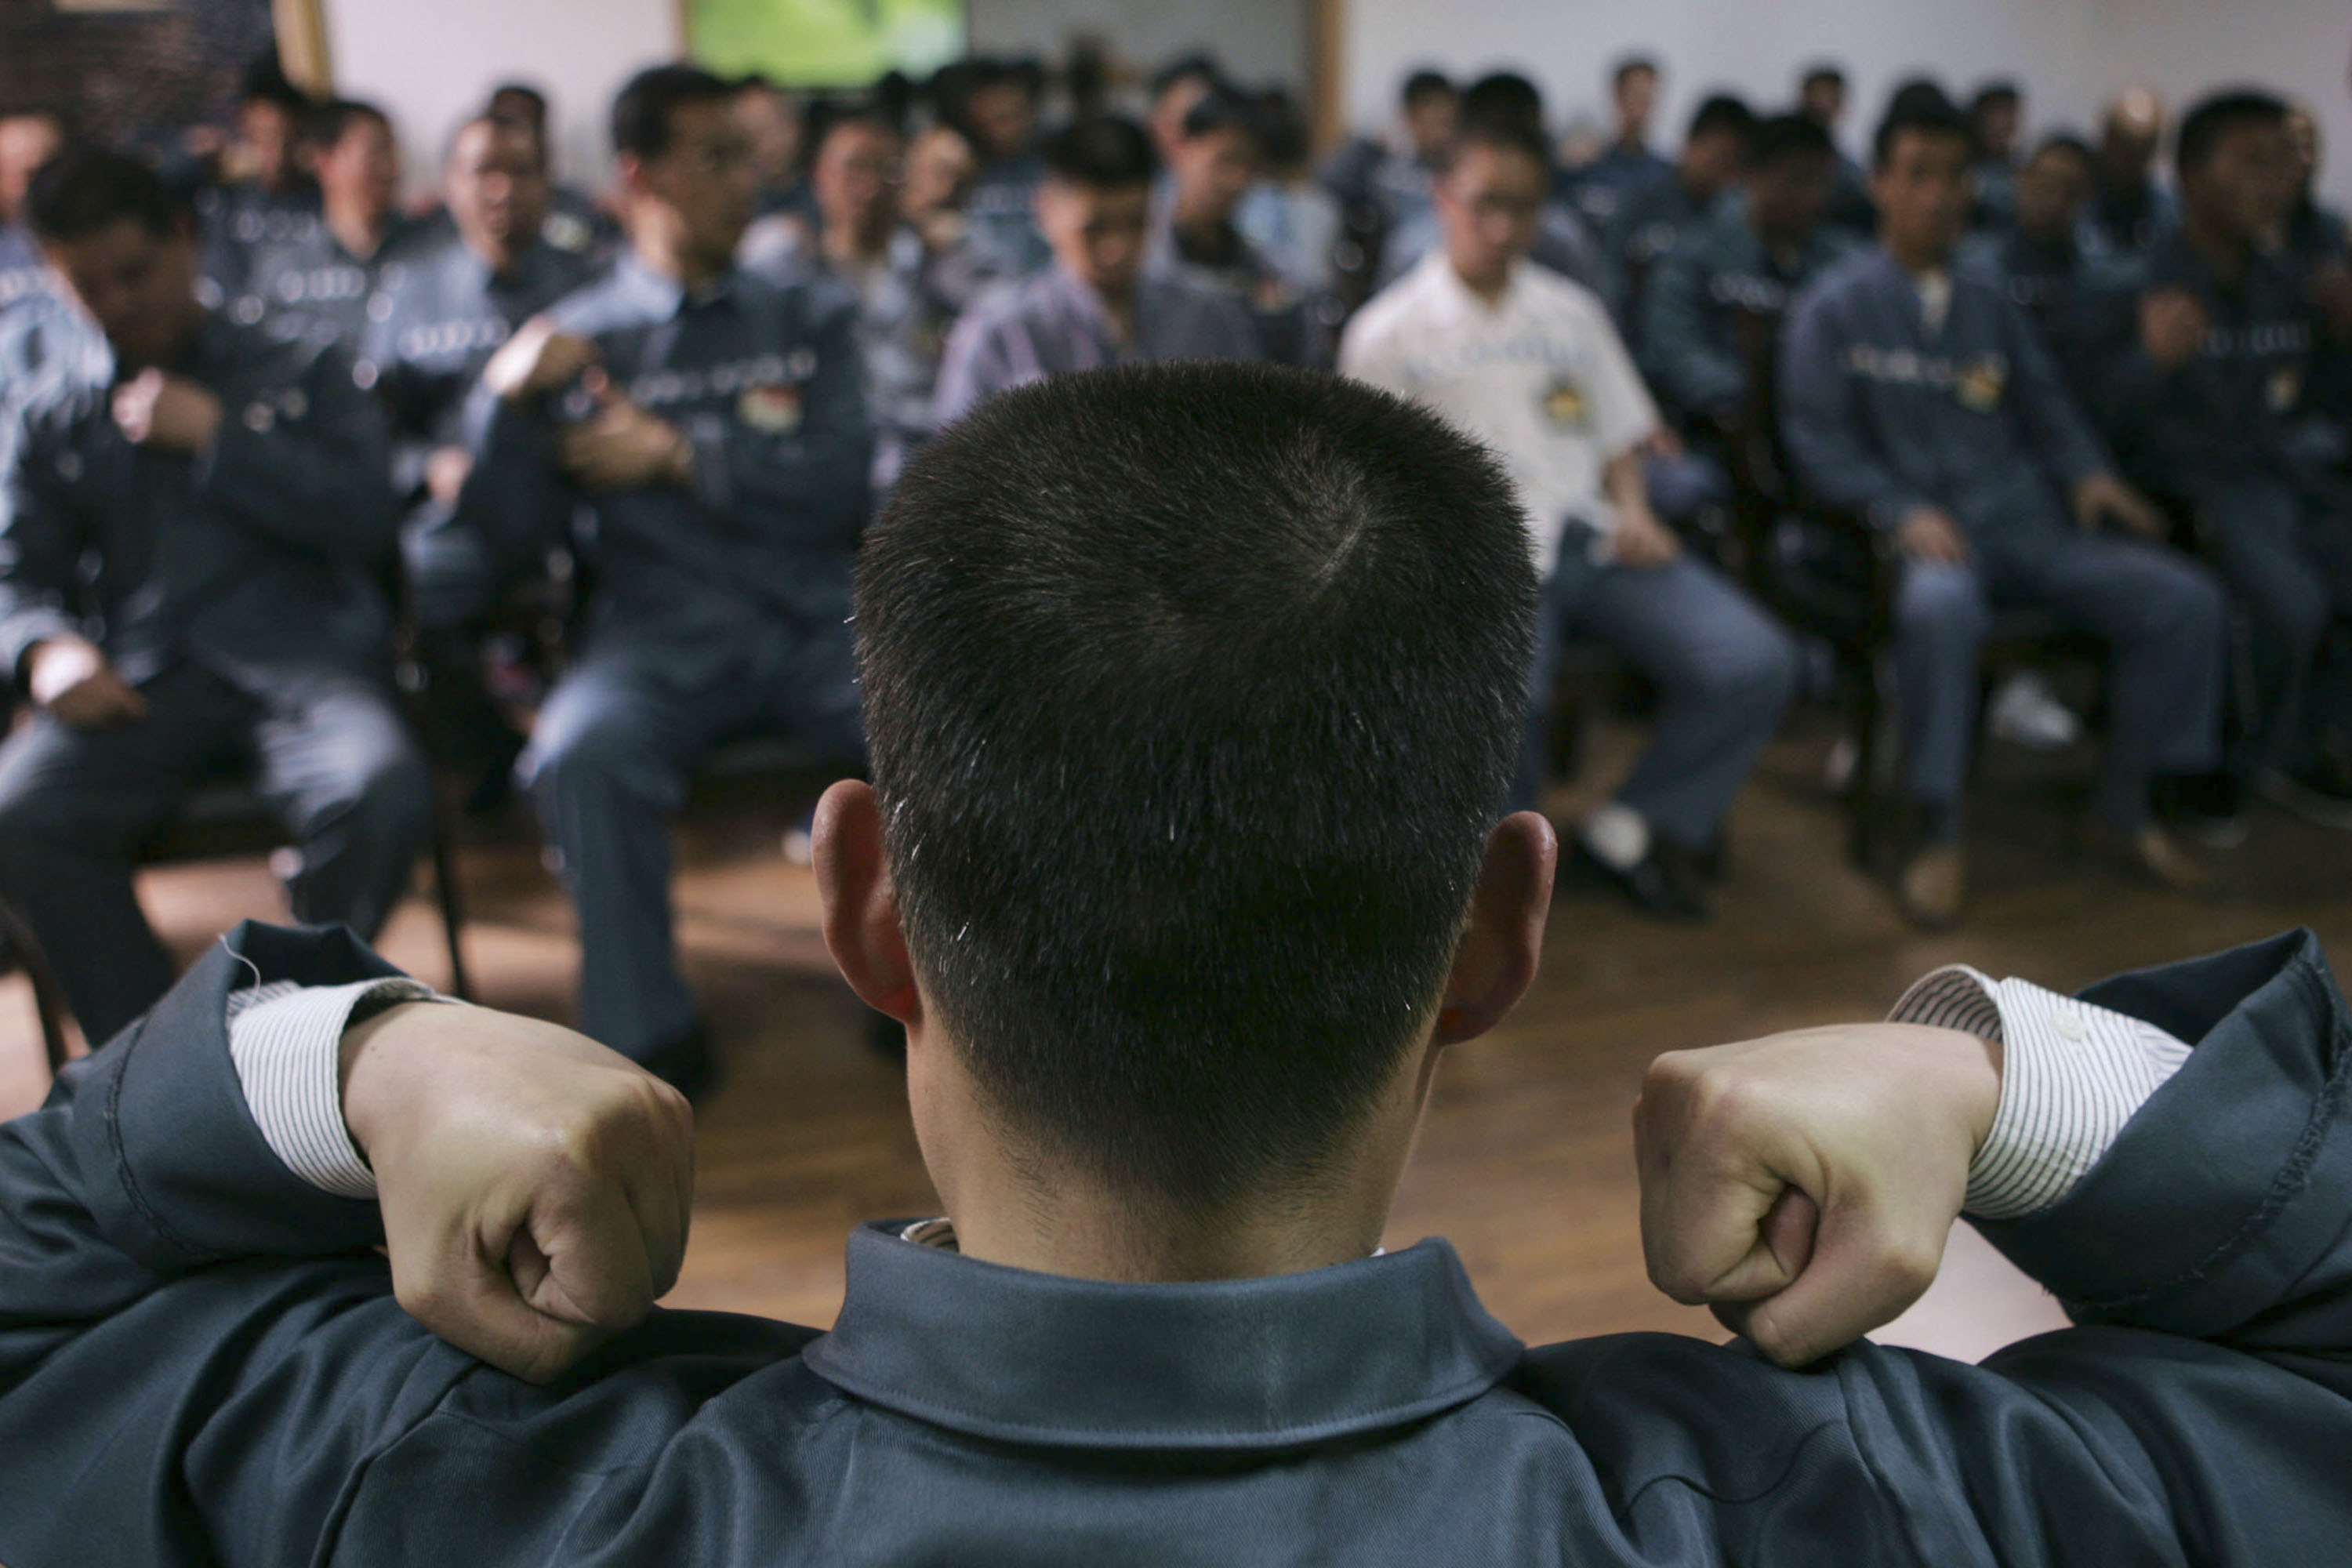 SHANGHAI, CHINA - APRIL 8: (CHINA OUT) Inmates receive a psychological correctional treatment during a psychological training and consultation session at Qingpu Prison on April 8, 2005 in Shanghai, China. China has carried out prison reform in big cities like Shanghai, Chongqing and Wuhan, with measures to better protect the legitimate rights and interests of prison inmates. Educational schemes, psychotherapy and community correctional methods are adopted in the administration of prisons. (Photo by China Photos/Getty Images)